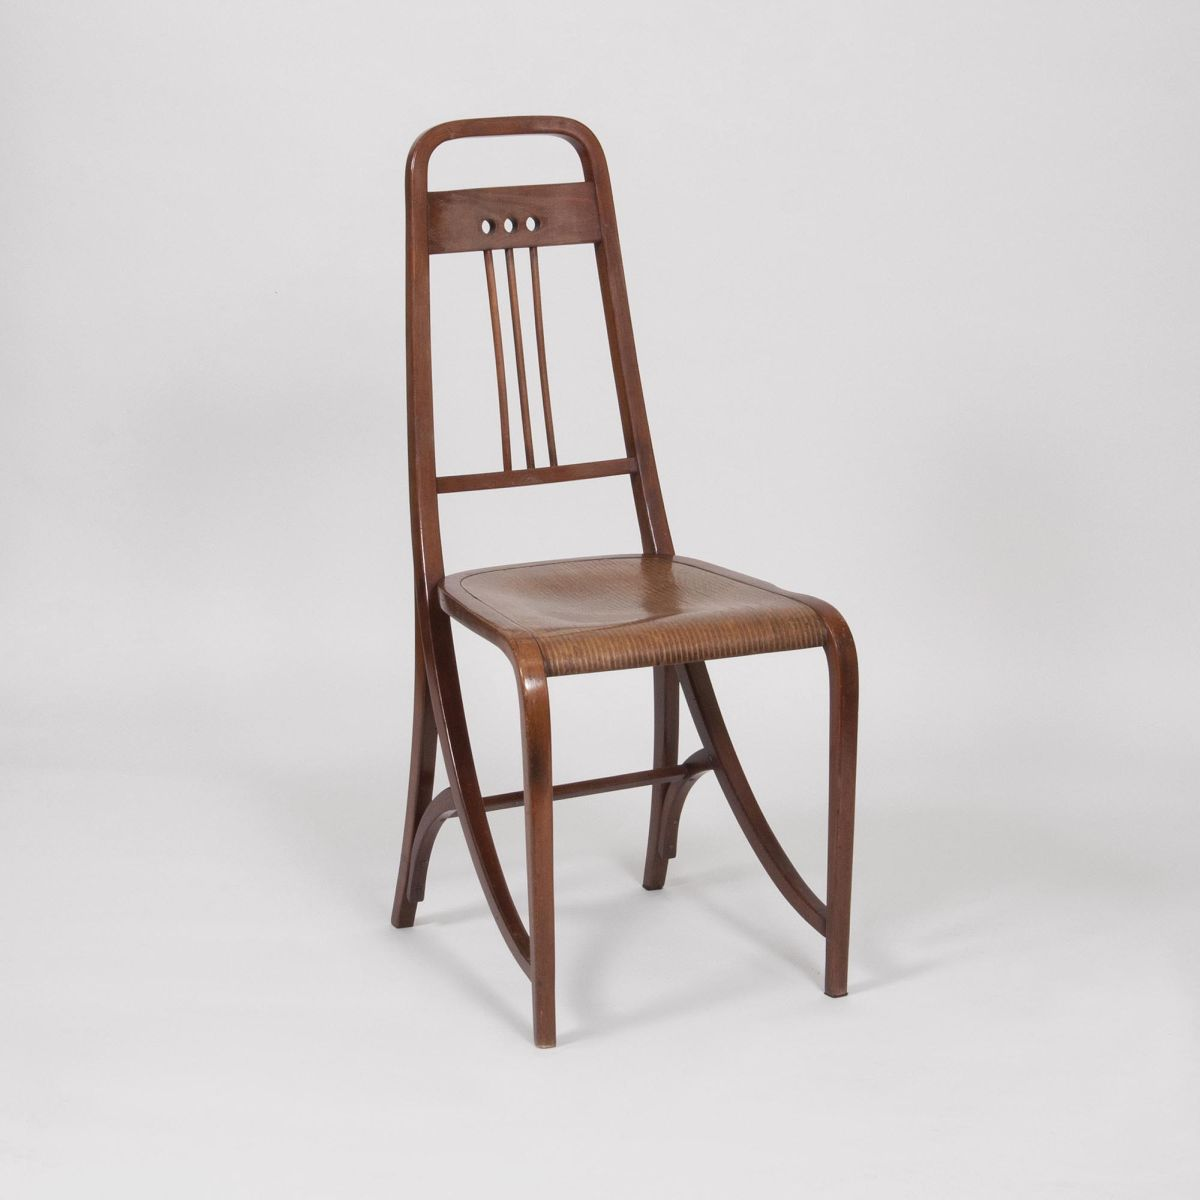 A Chair No. 511